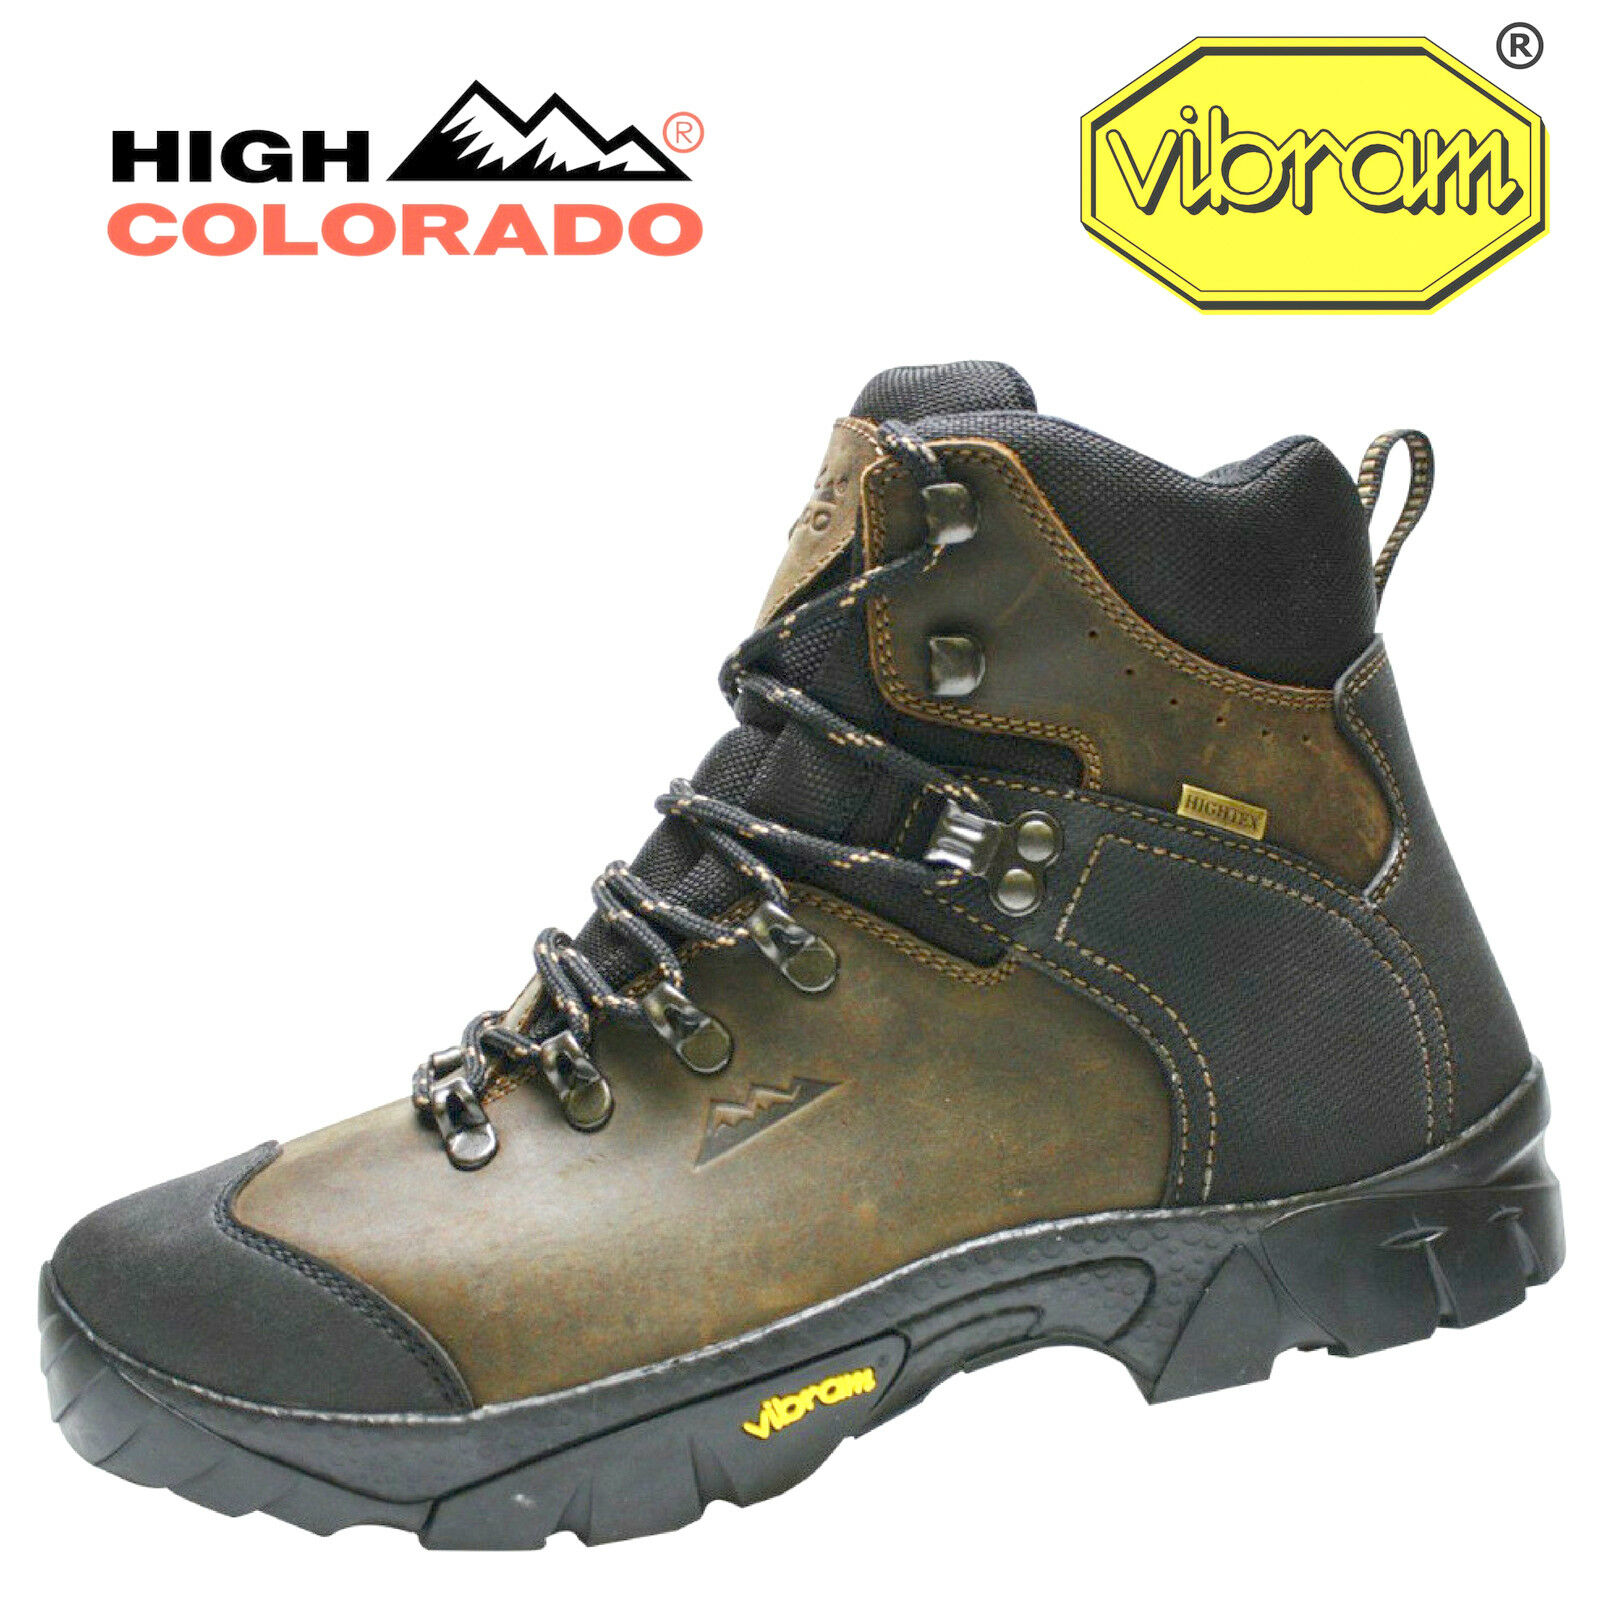 High Colorado eiger High Tex Vibram Leather Men 's Walker